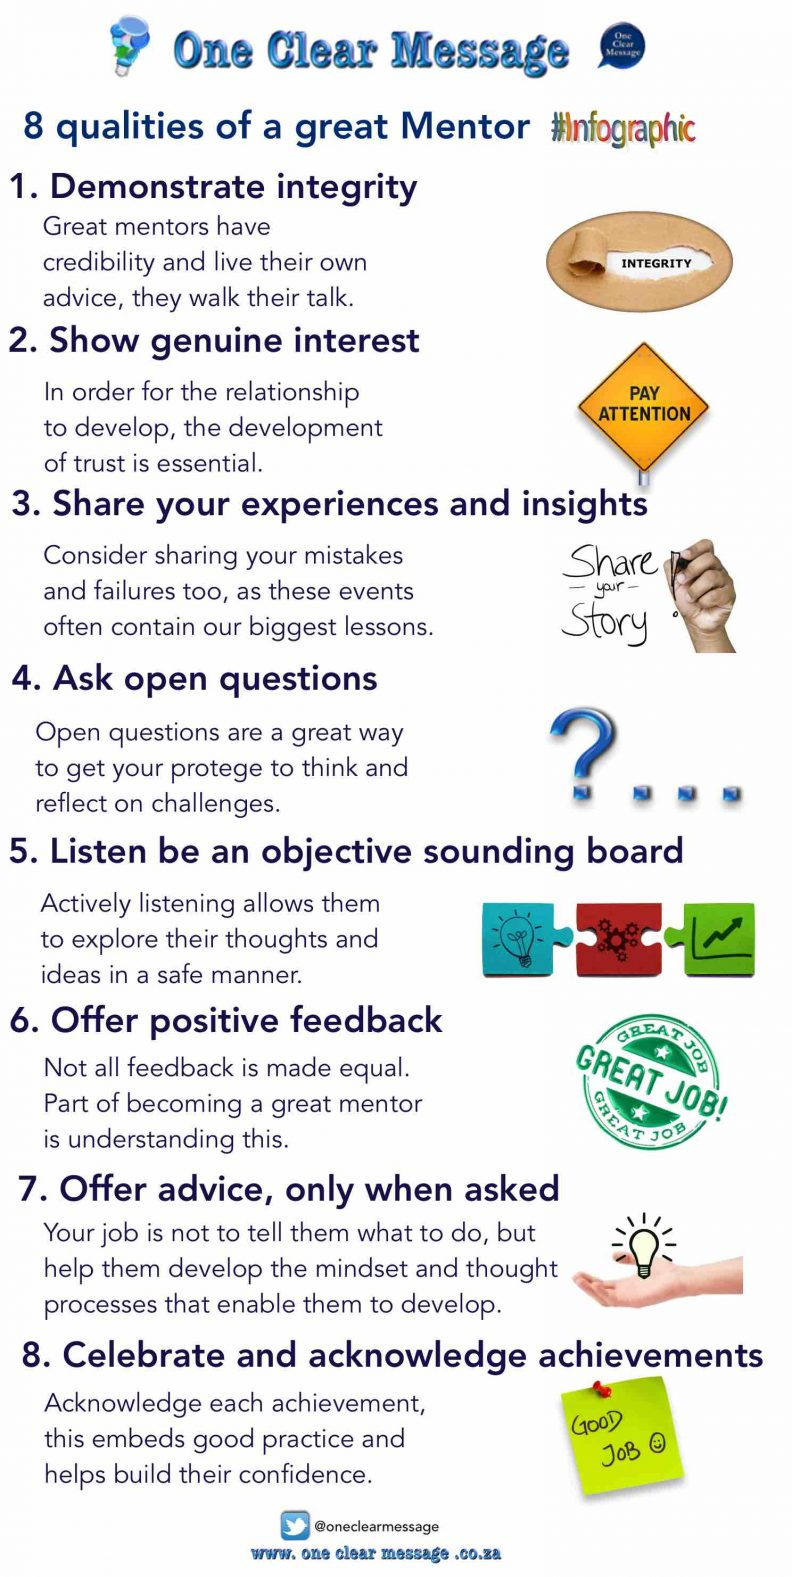 8 qualities of a great Mentor infographic